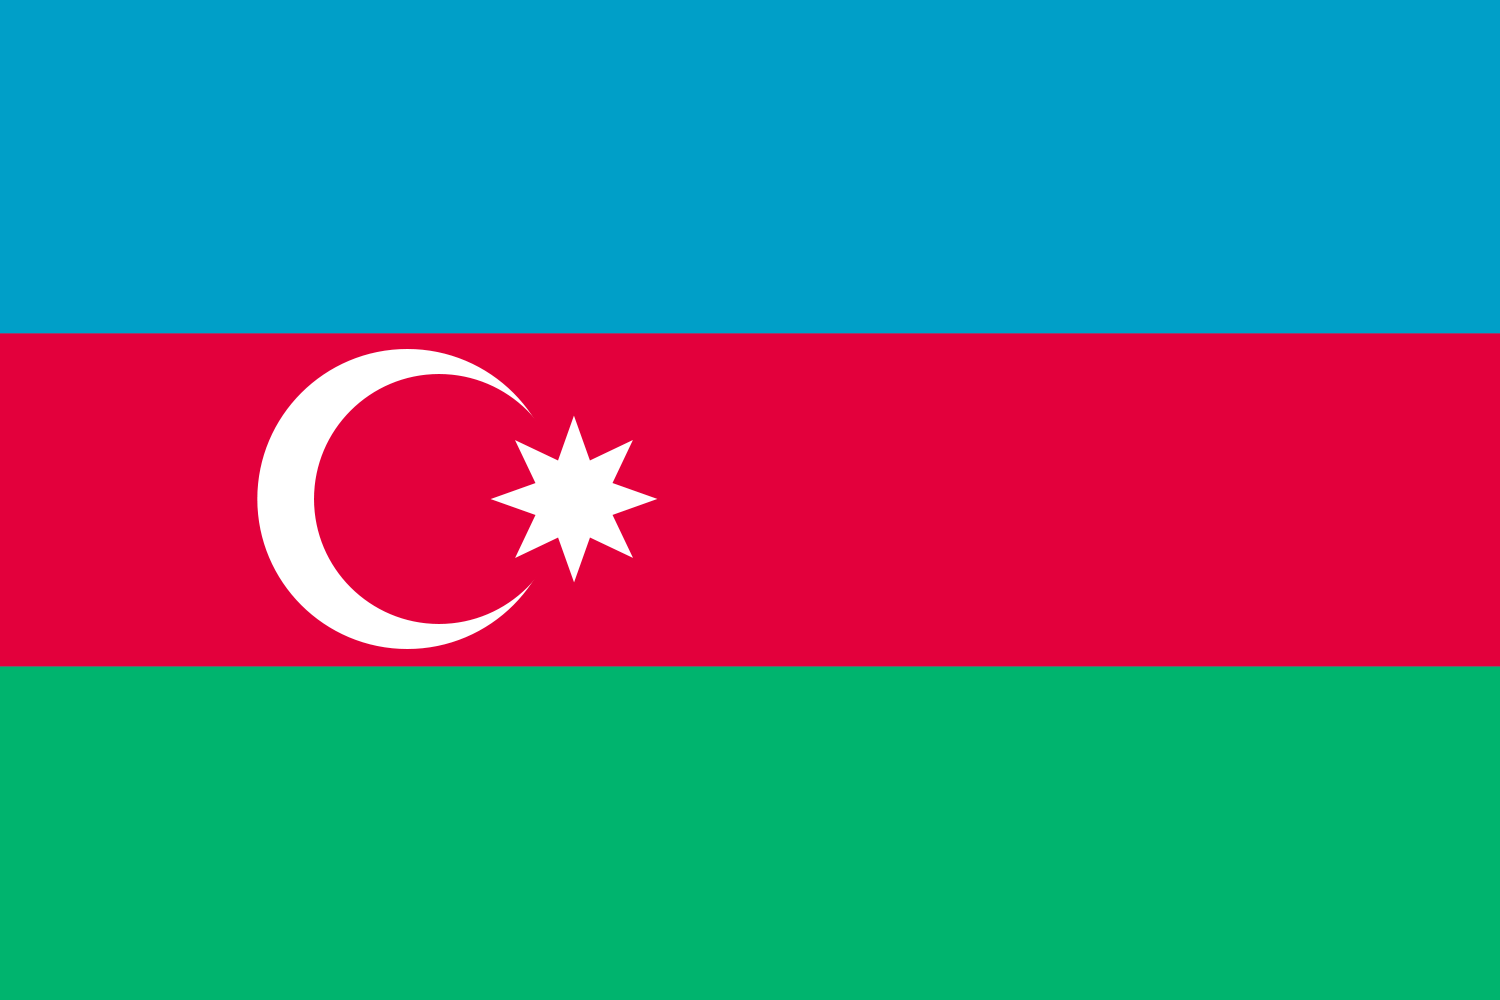 Flag Of Azerbaijan Backgrounds, Compatible - PC, Mobile, Gadgets| 1500x1000 px